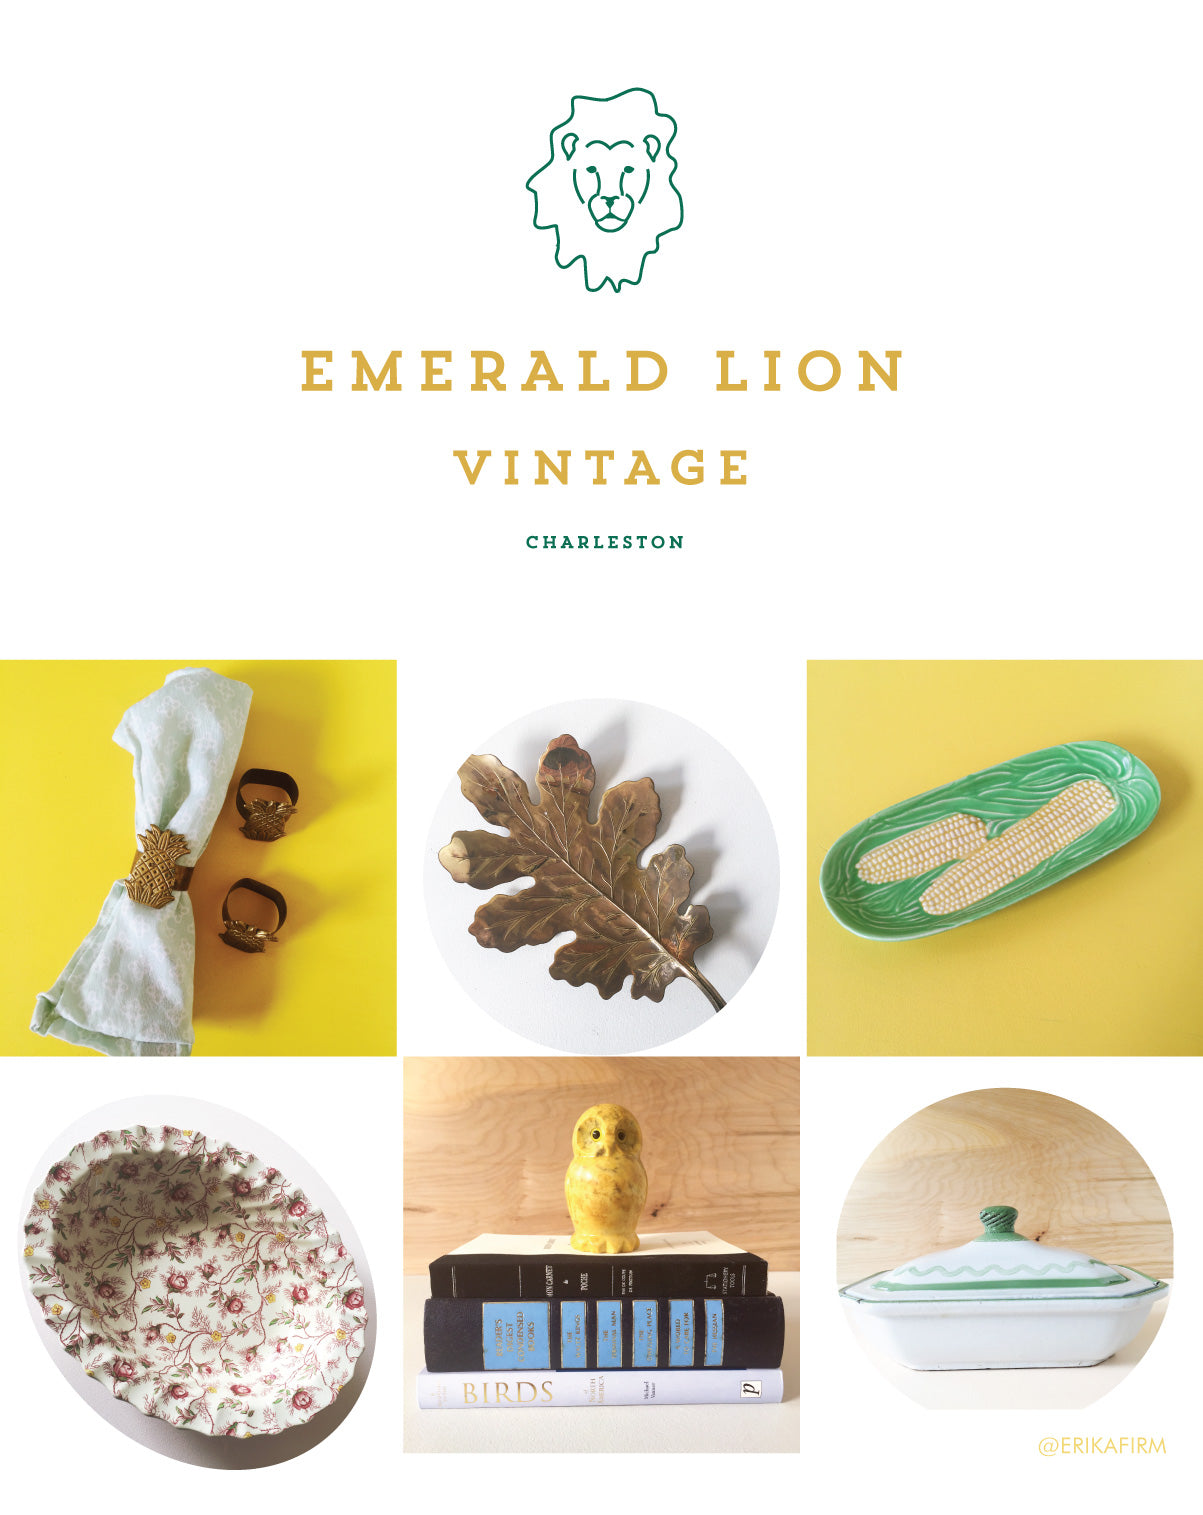 Emerald Lion Vintage Shop Launch Erika Firm